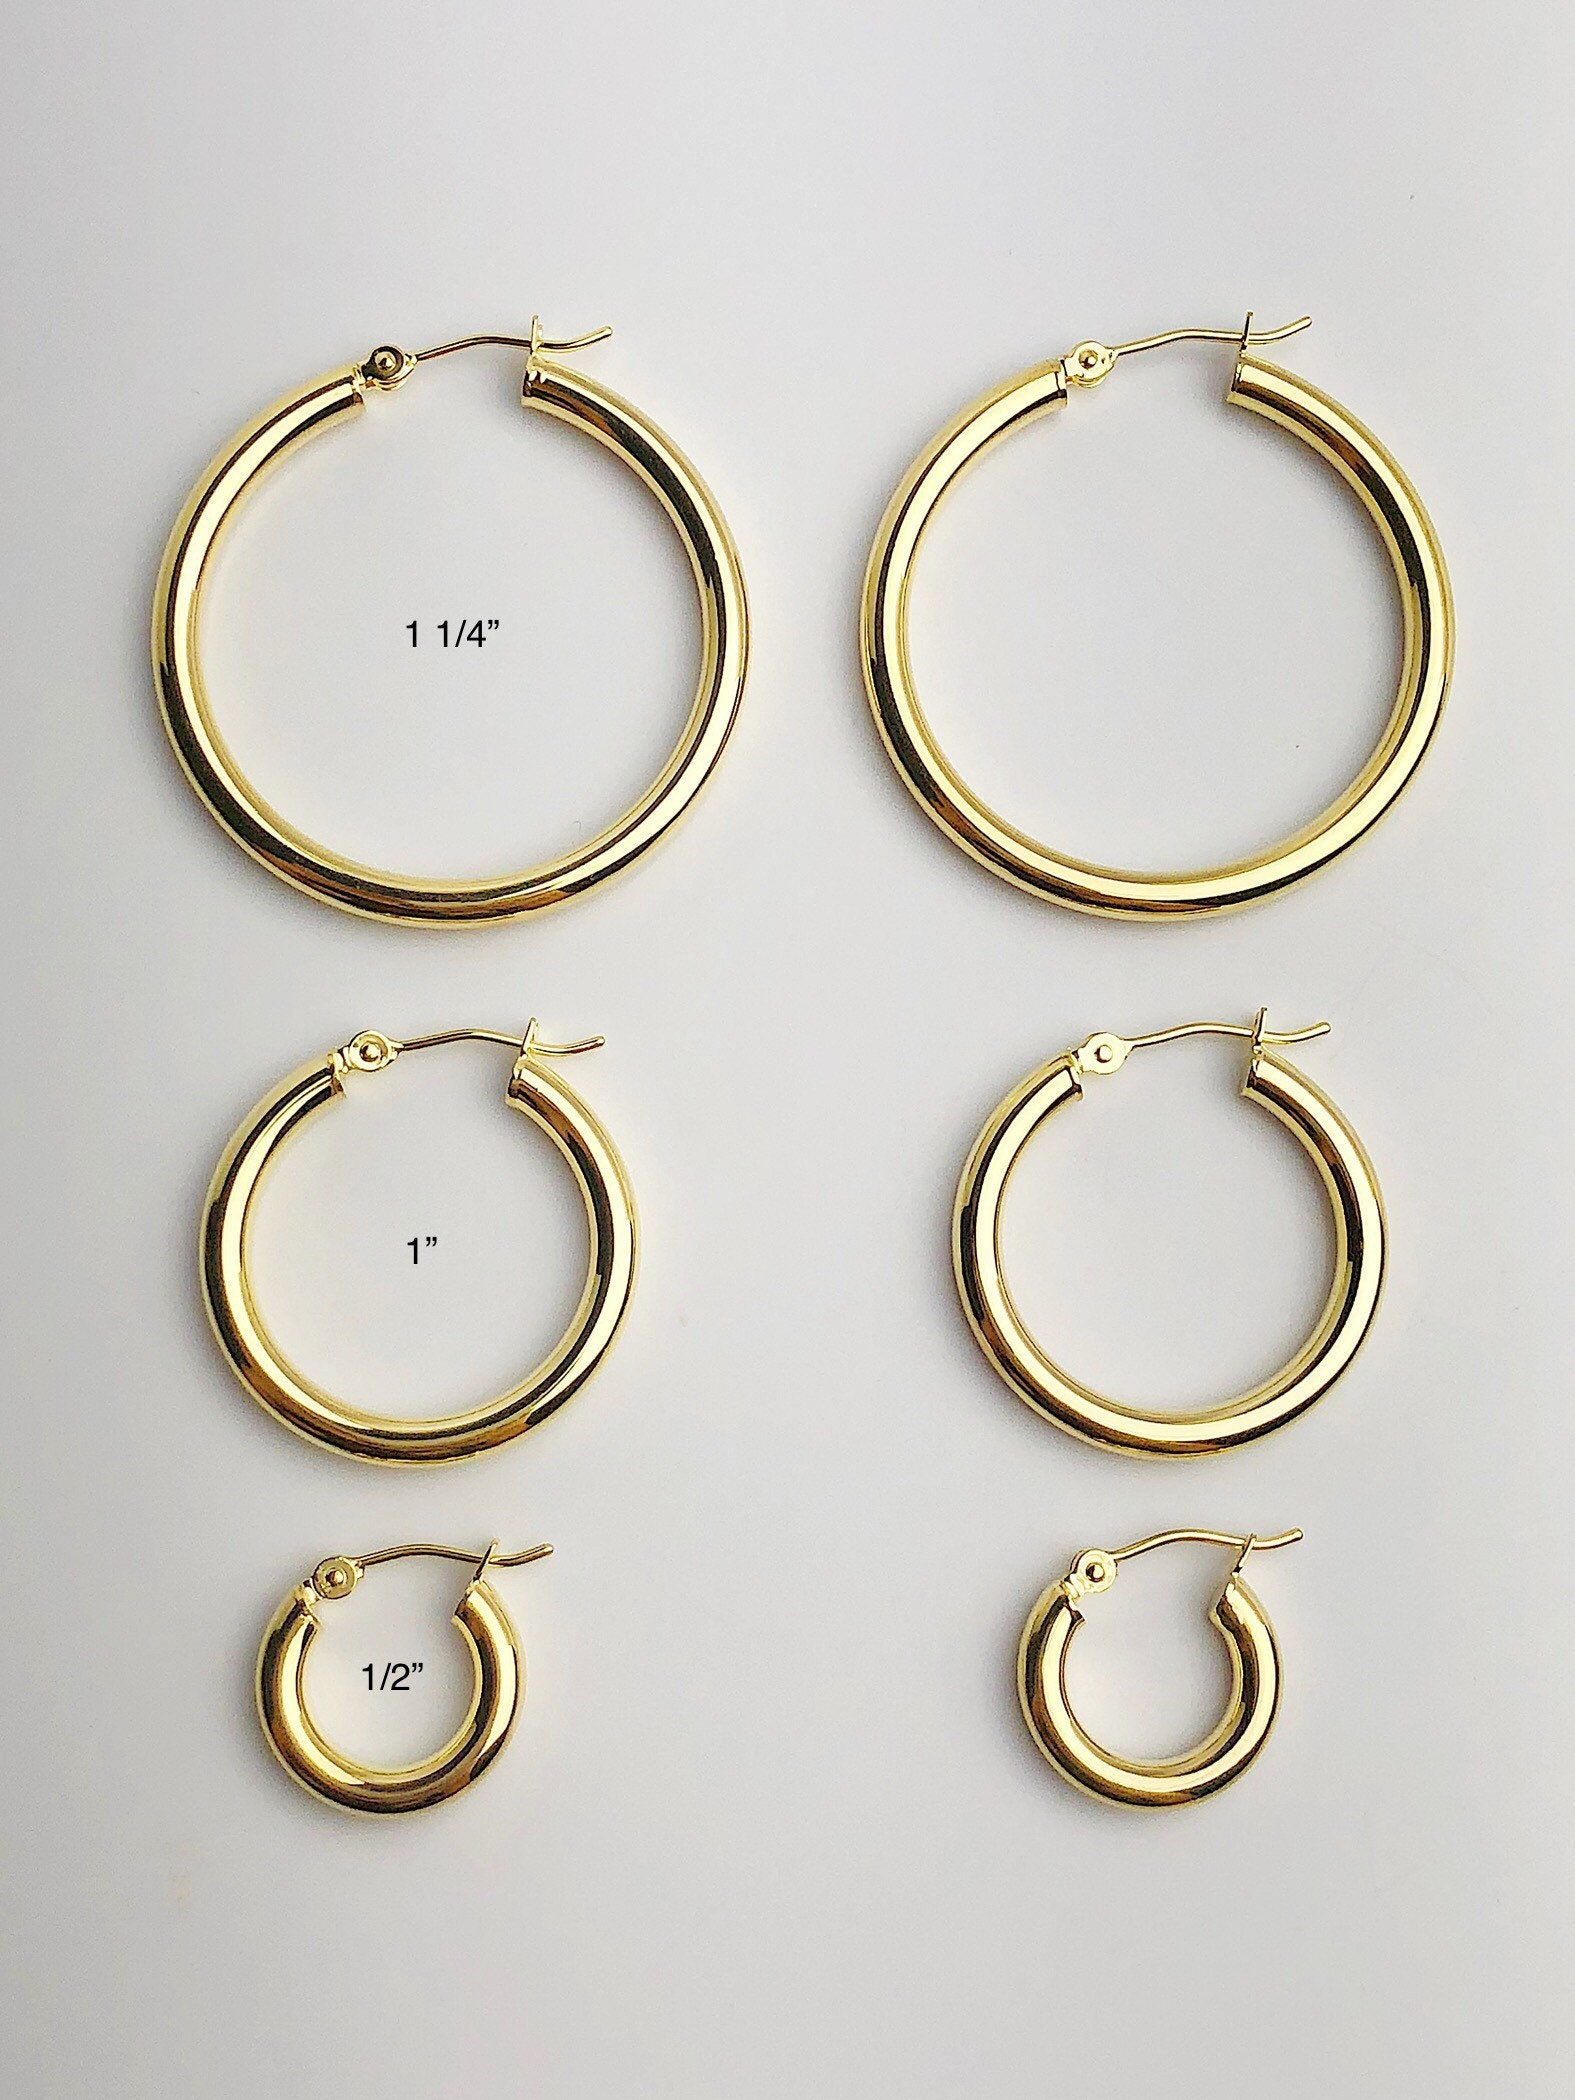 1 14 to 12 Made in USA #884-287, 187, 185 14k 3mm Gold Hoop Earrings